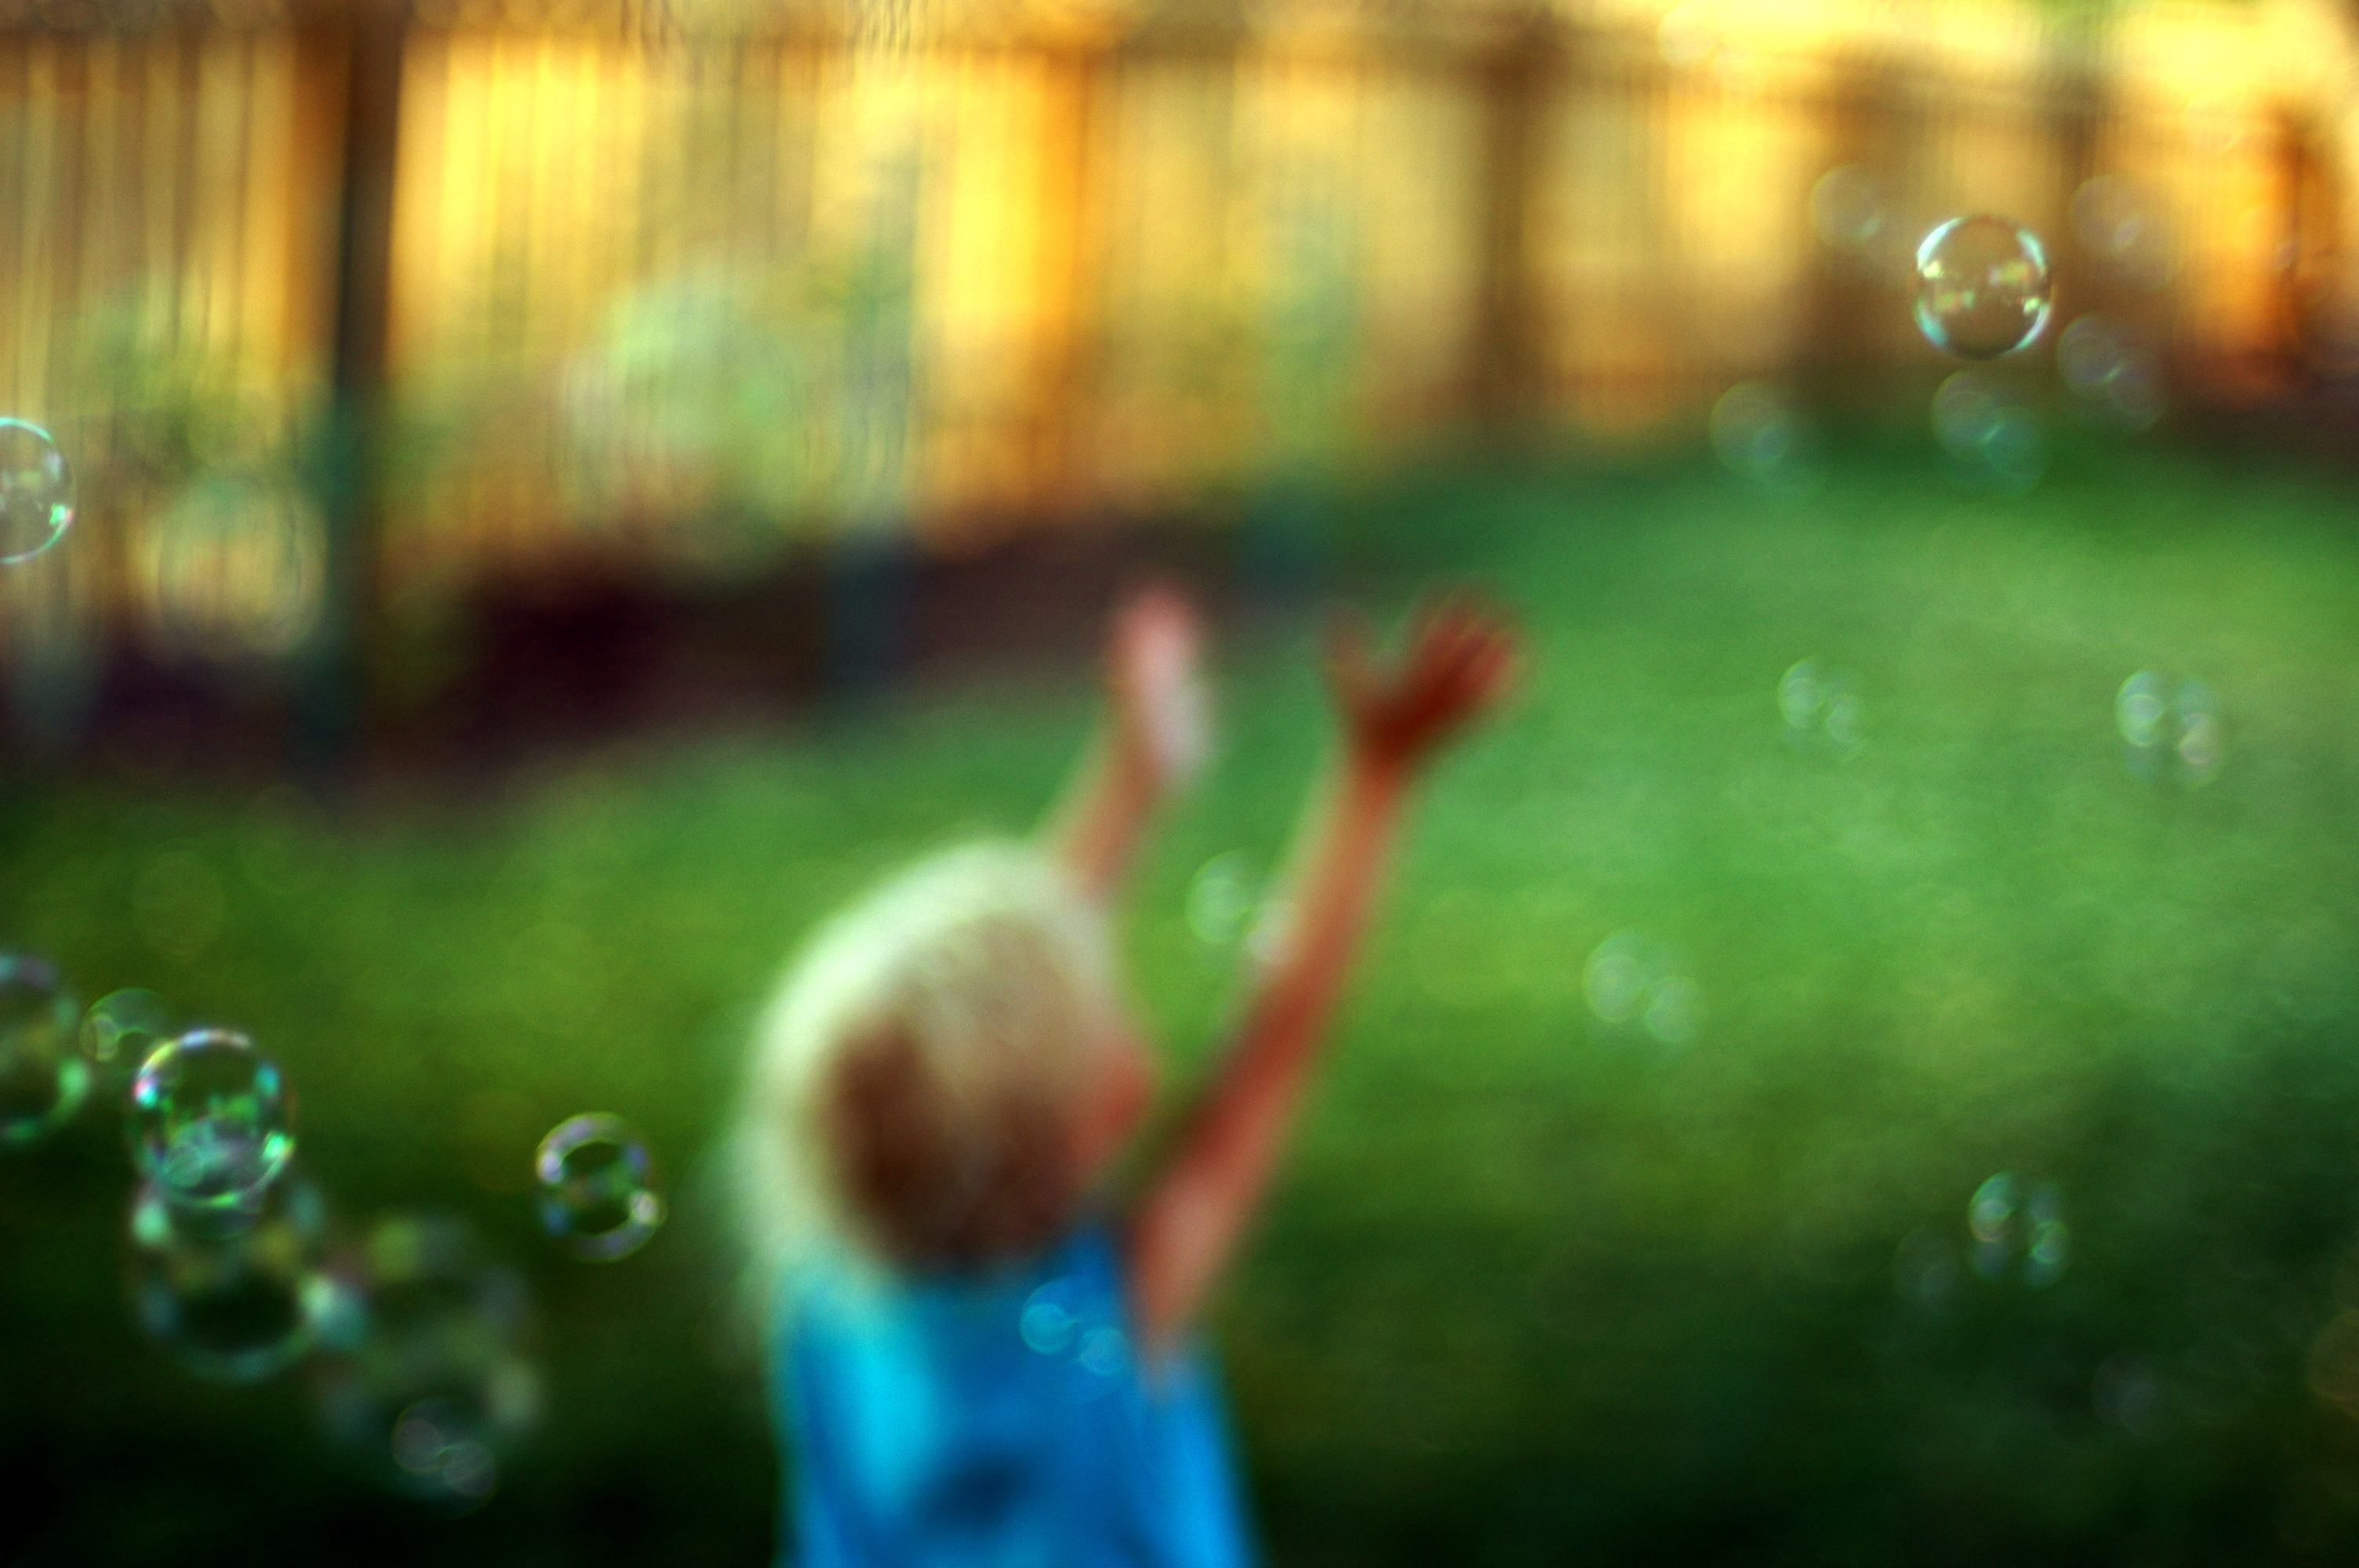 blurry image of a child catching bubbles